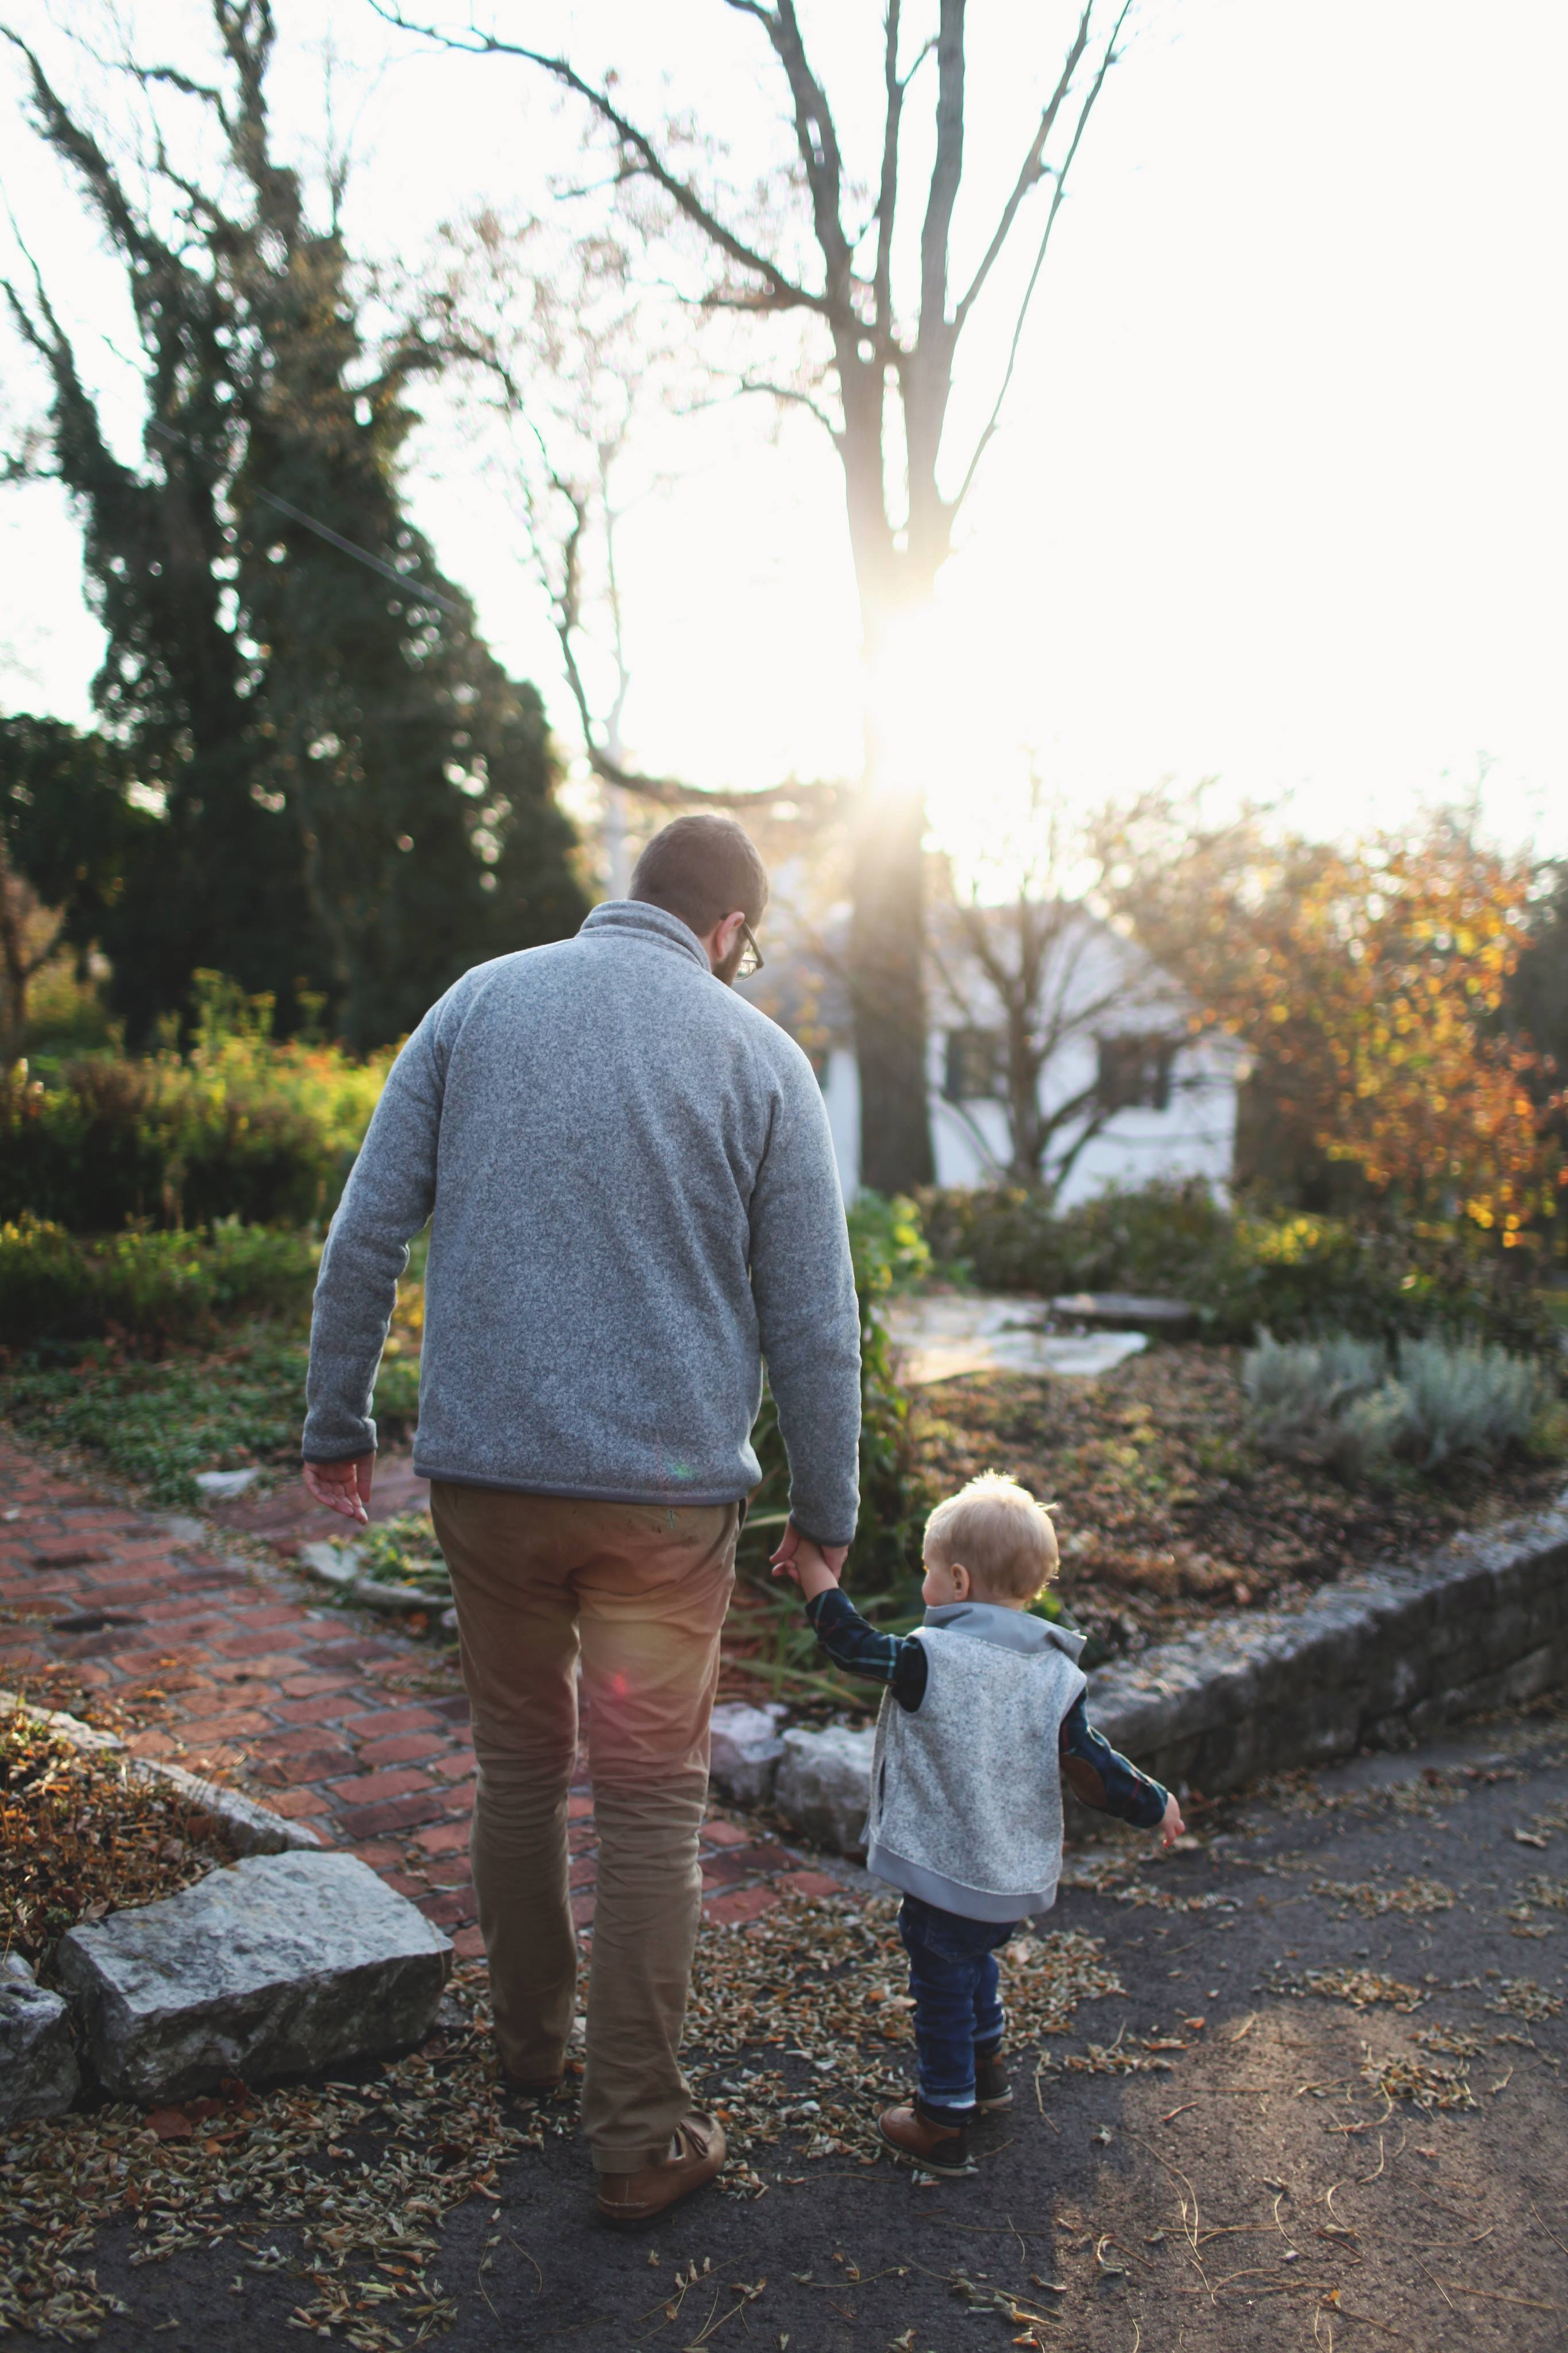 Man Holding Hands With Baby While Walking Through Pathway Facing Sunlight, Adult, Man, Trees, Sunset, HQ Photo